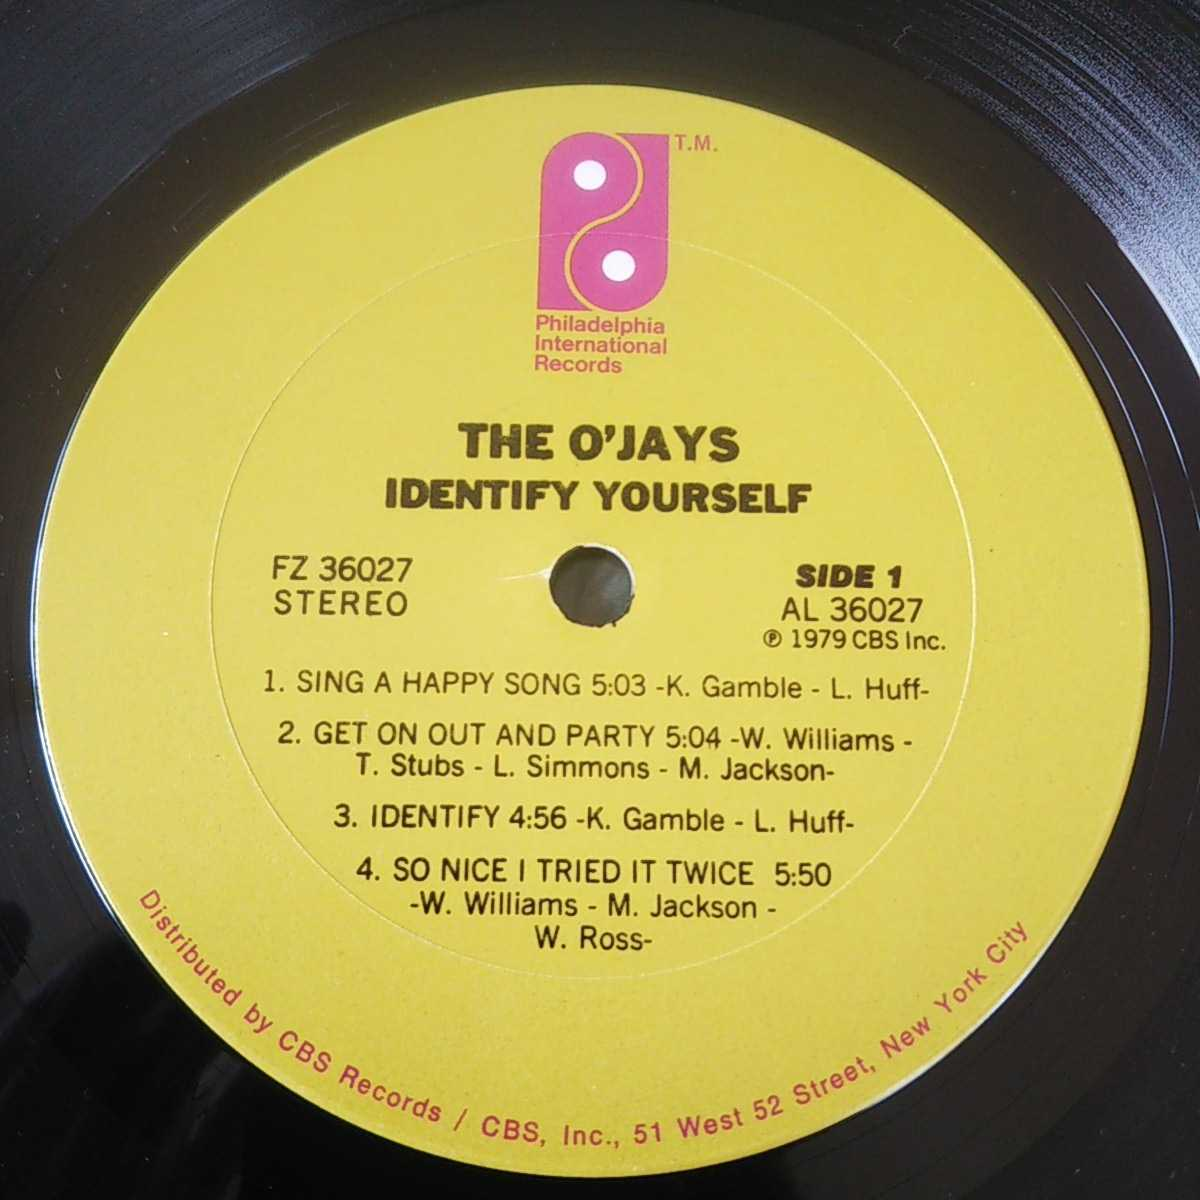 THE O'JAYS / IDENTIFY YOURSELF /LP/SING A HAPPY SONG/GAMBLE & HUFF/DISCO/フィリー/フリーソウル _画像3